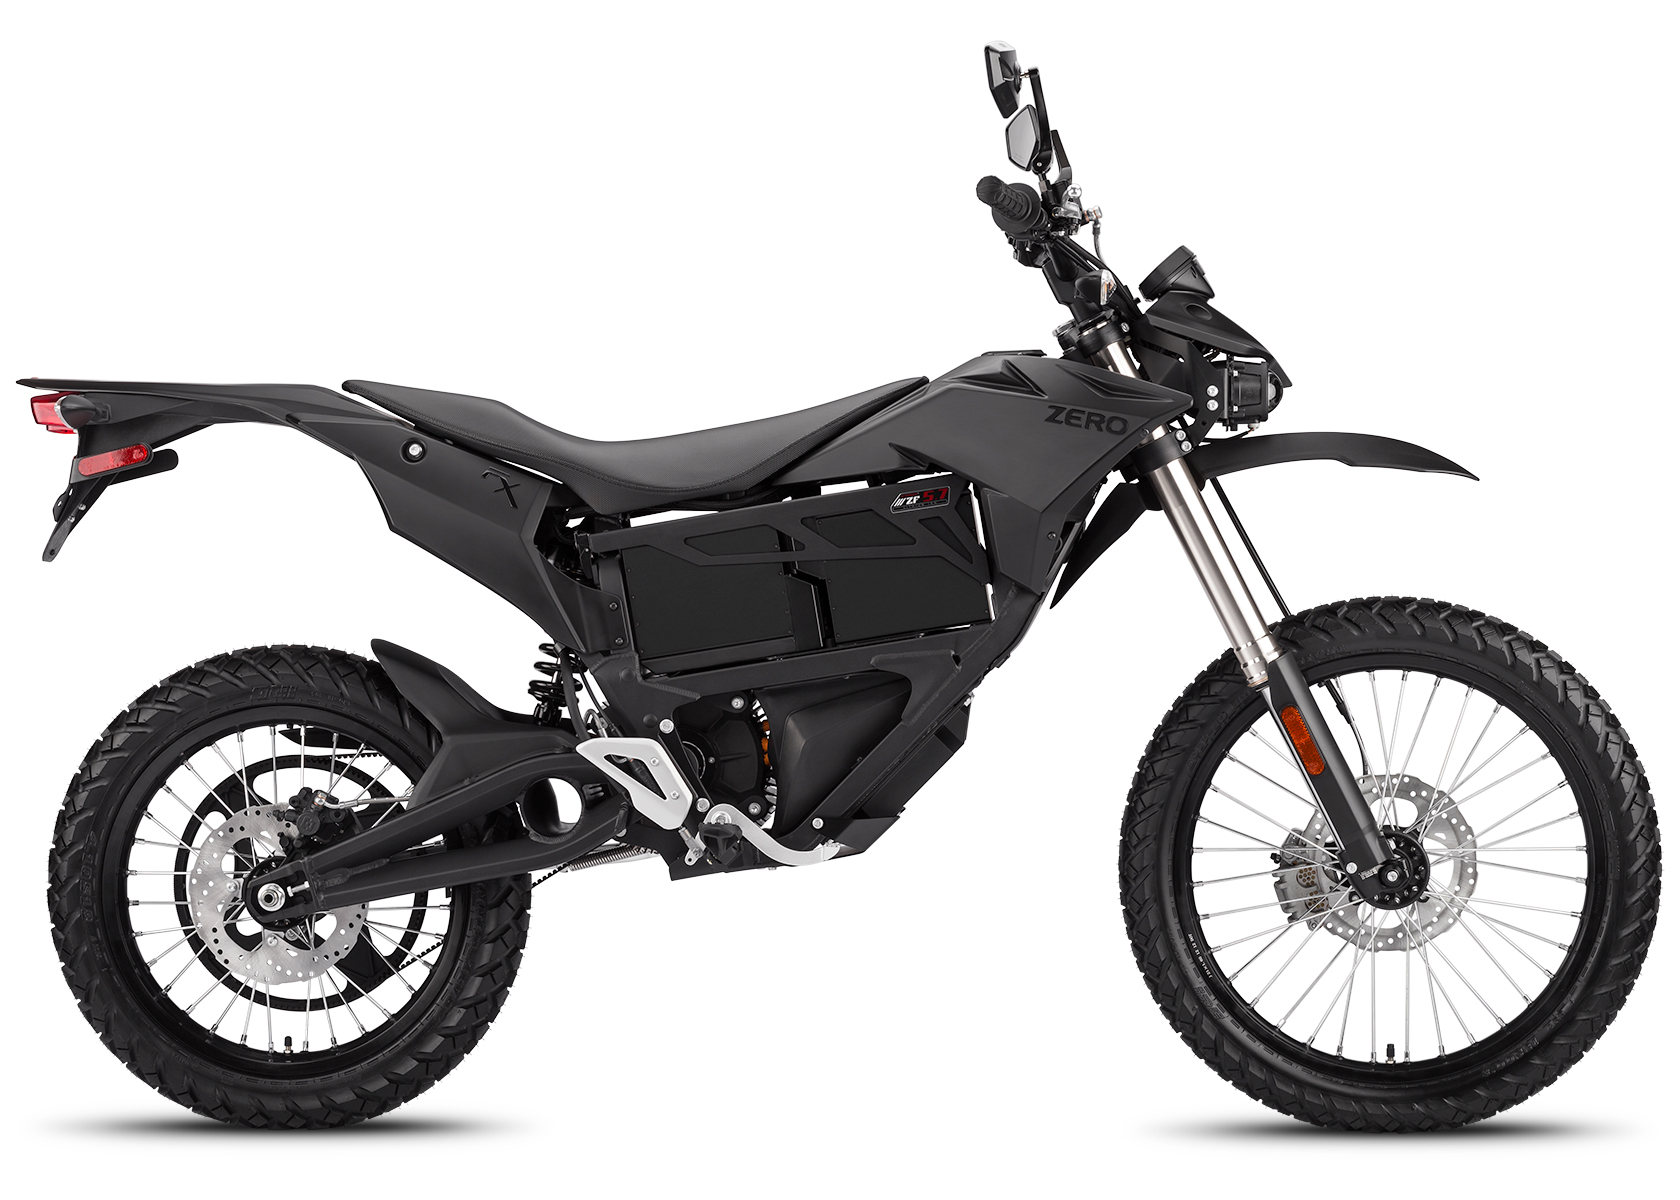 '.2014 Zero FX Electric Motorcycle: Black Profile Right, White Background.'